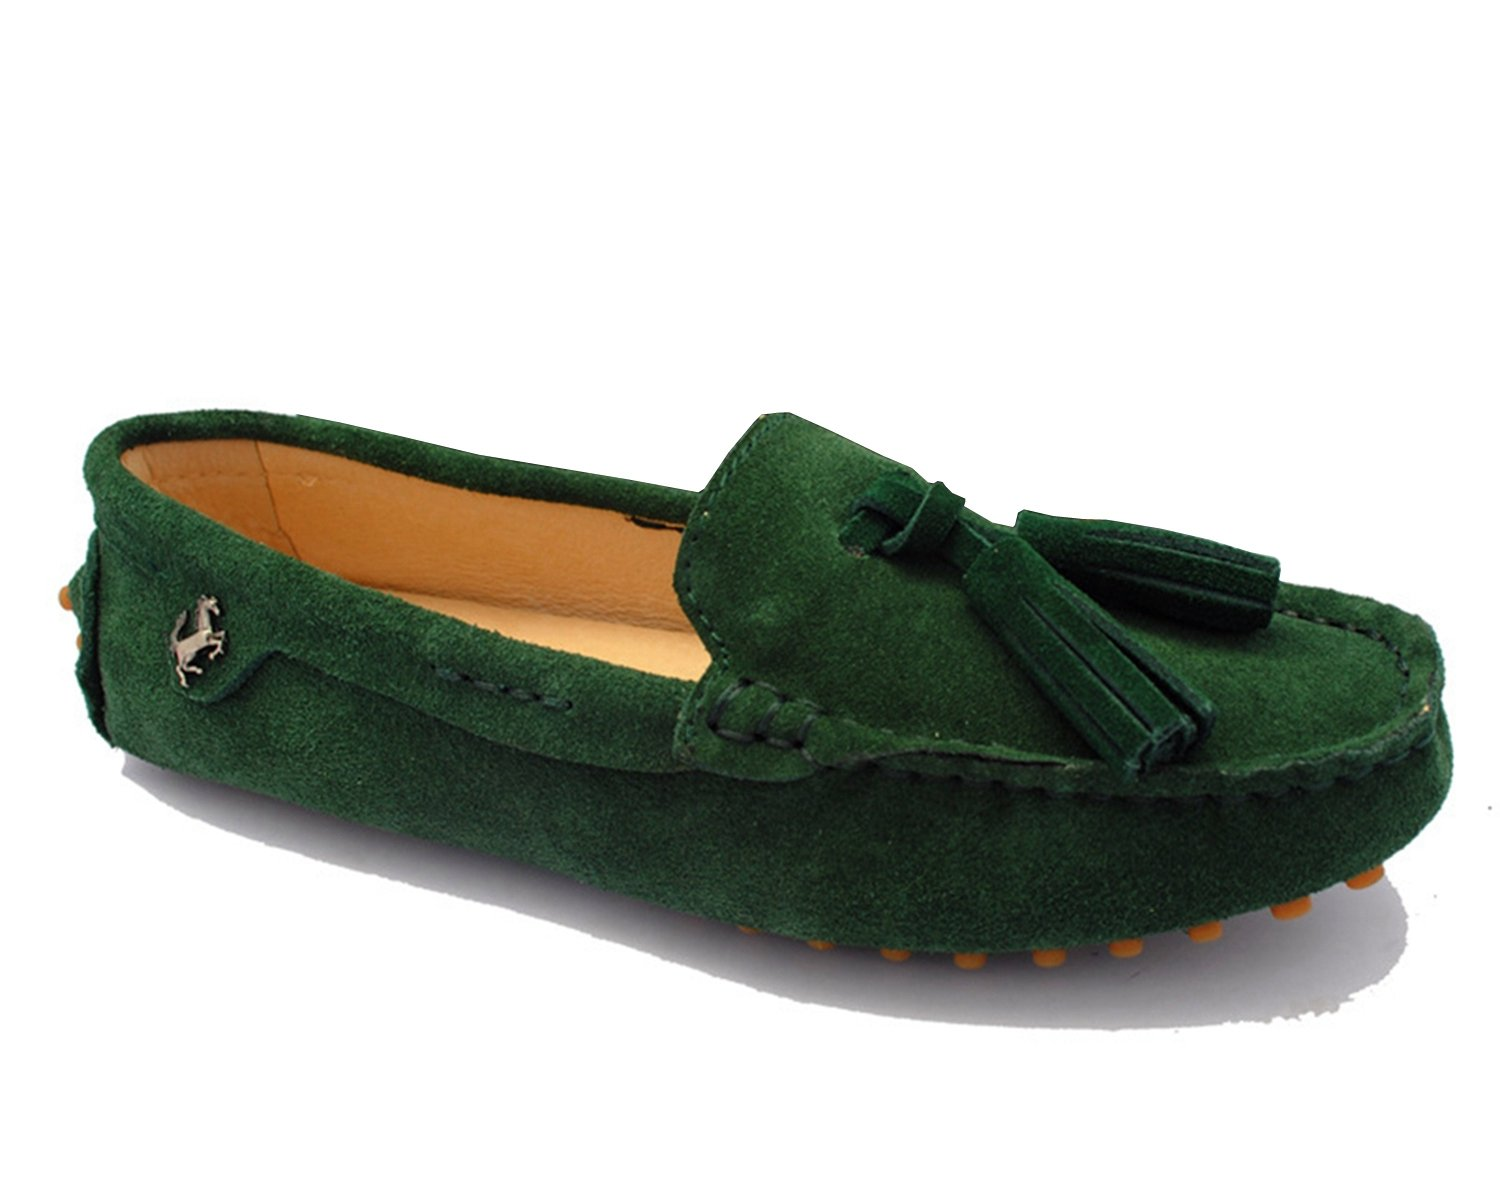 Minitoo , femme Sandales 15475 Compensées femme Minitoo Vert jade e5639a3 - therethere.space